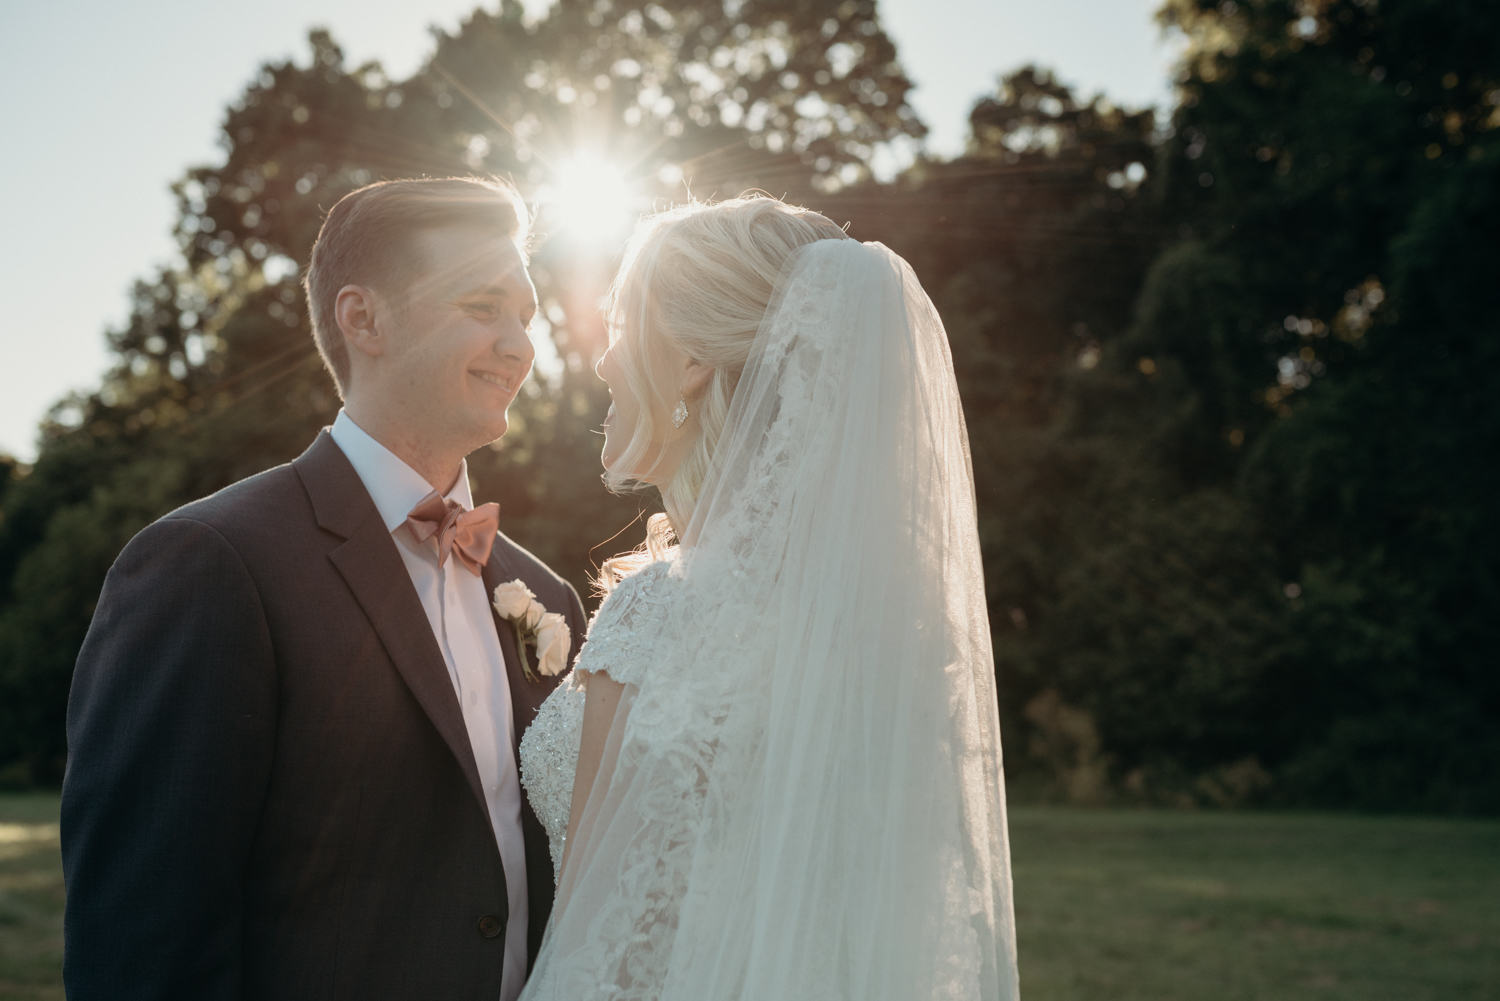 The sun shines through while a husband and wife gaze at each other after their outdoor wedding ceremony at Lansdowne Resort.